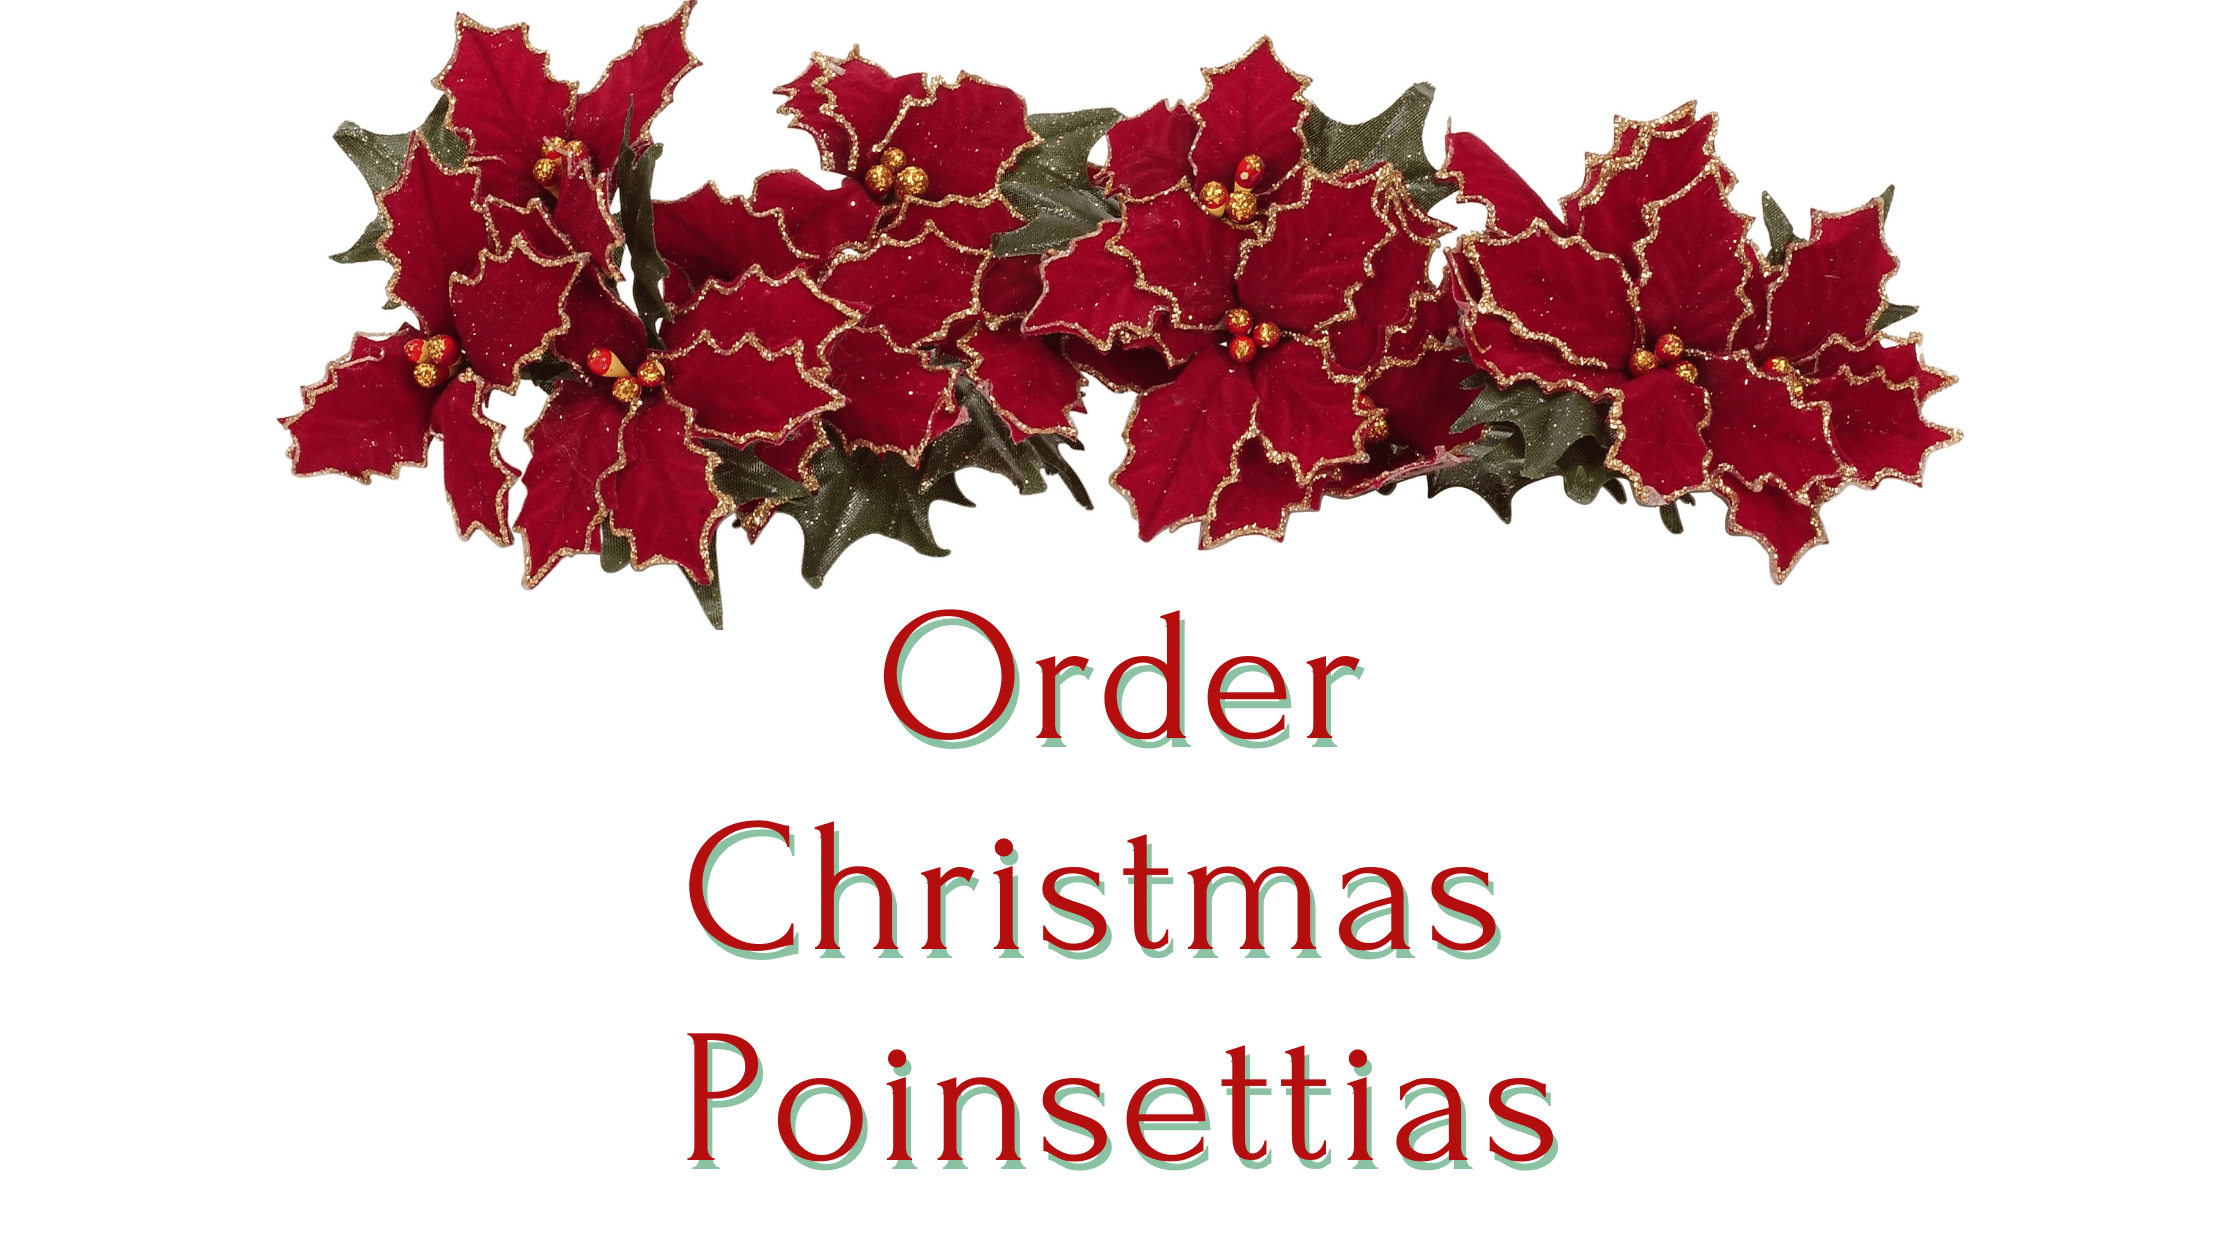 Order Christmas Poinsettias.png